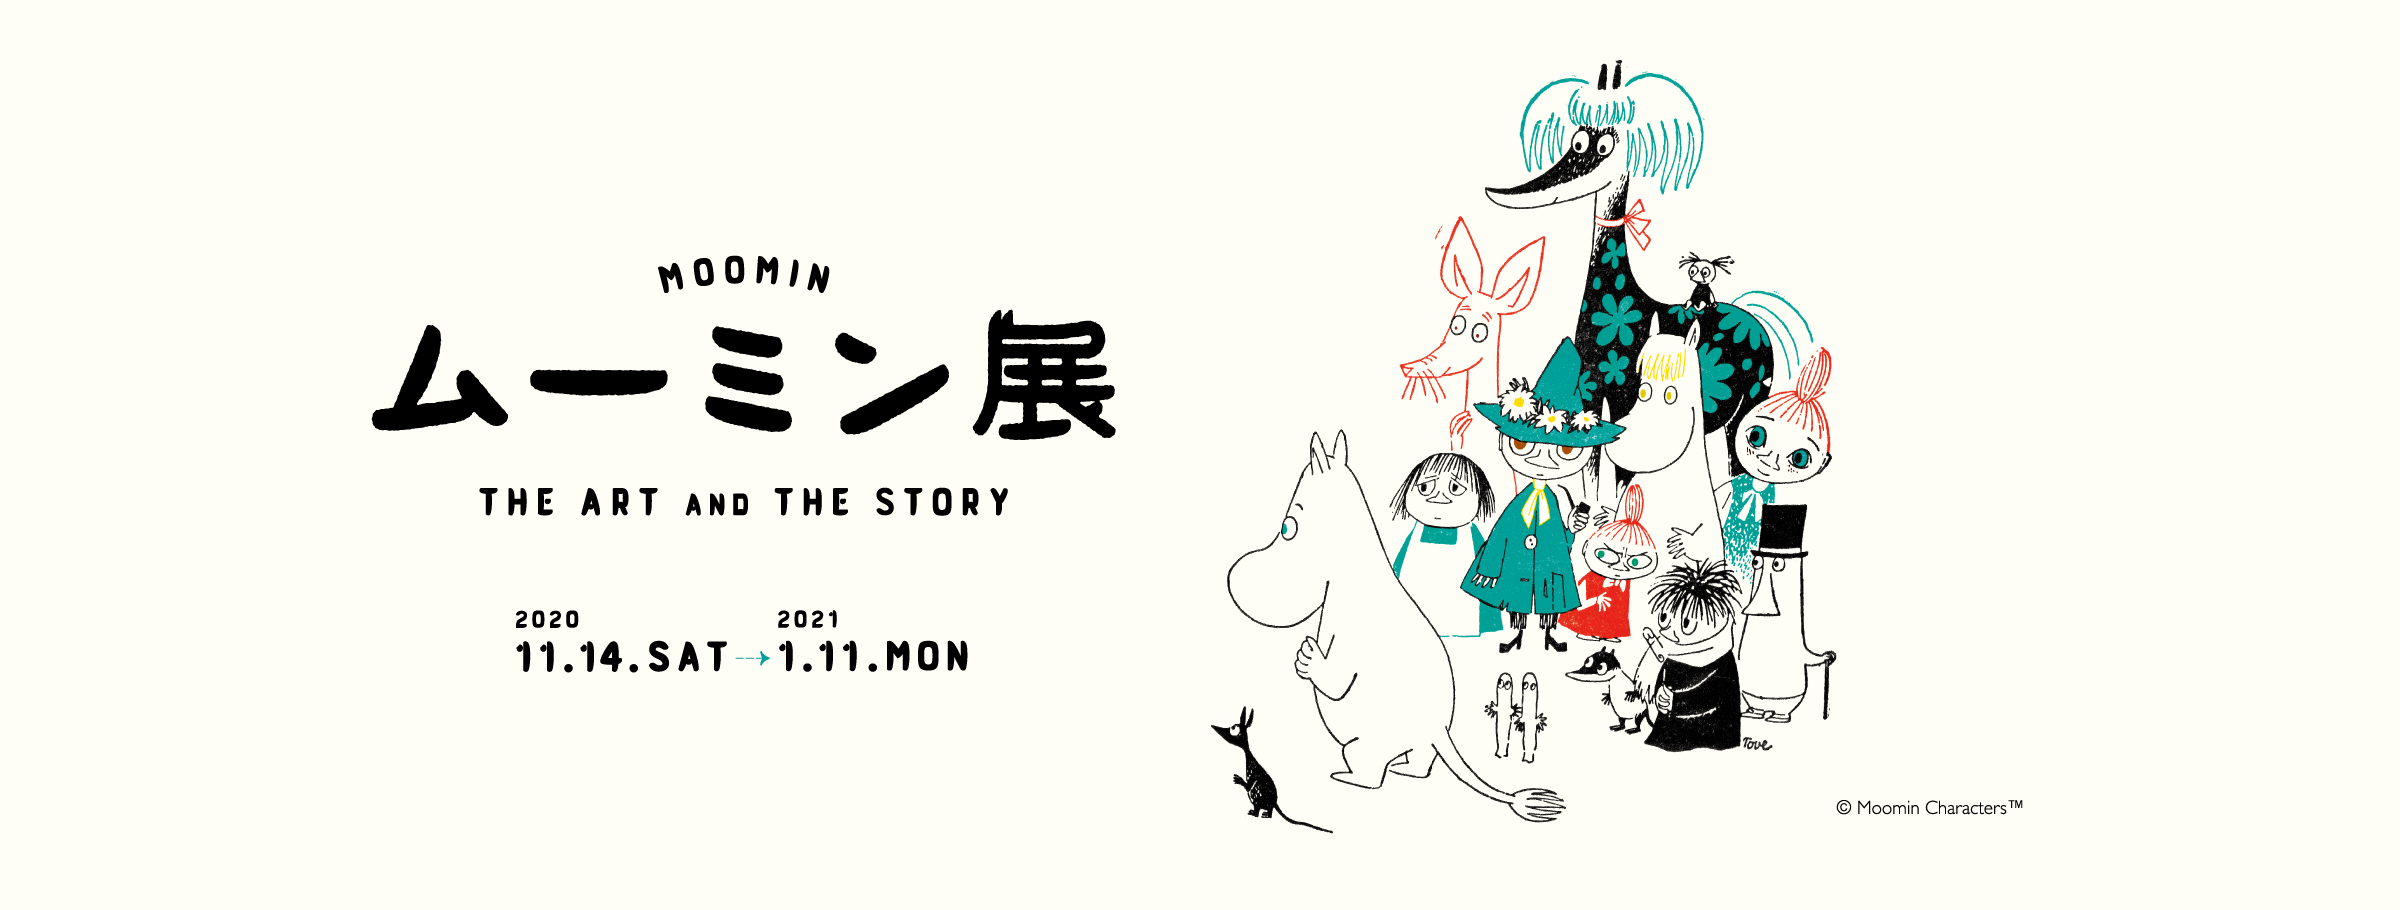 MOOMIN THE ART AND THE STORY 展